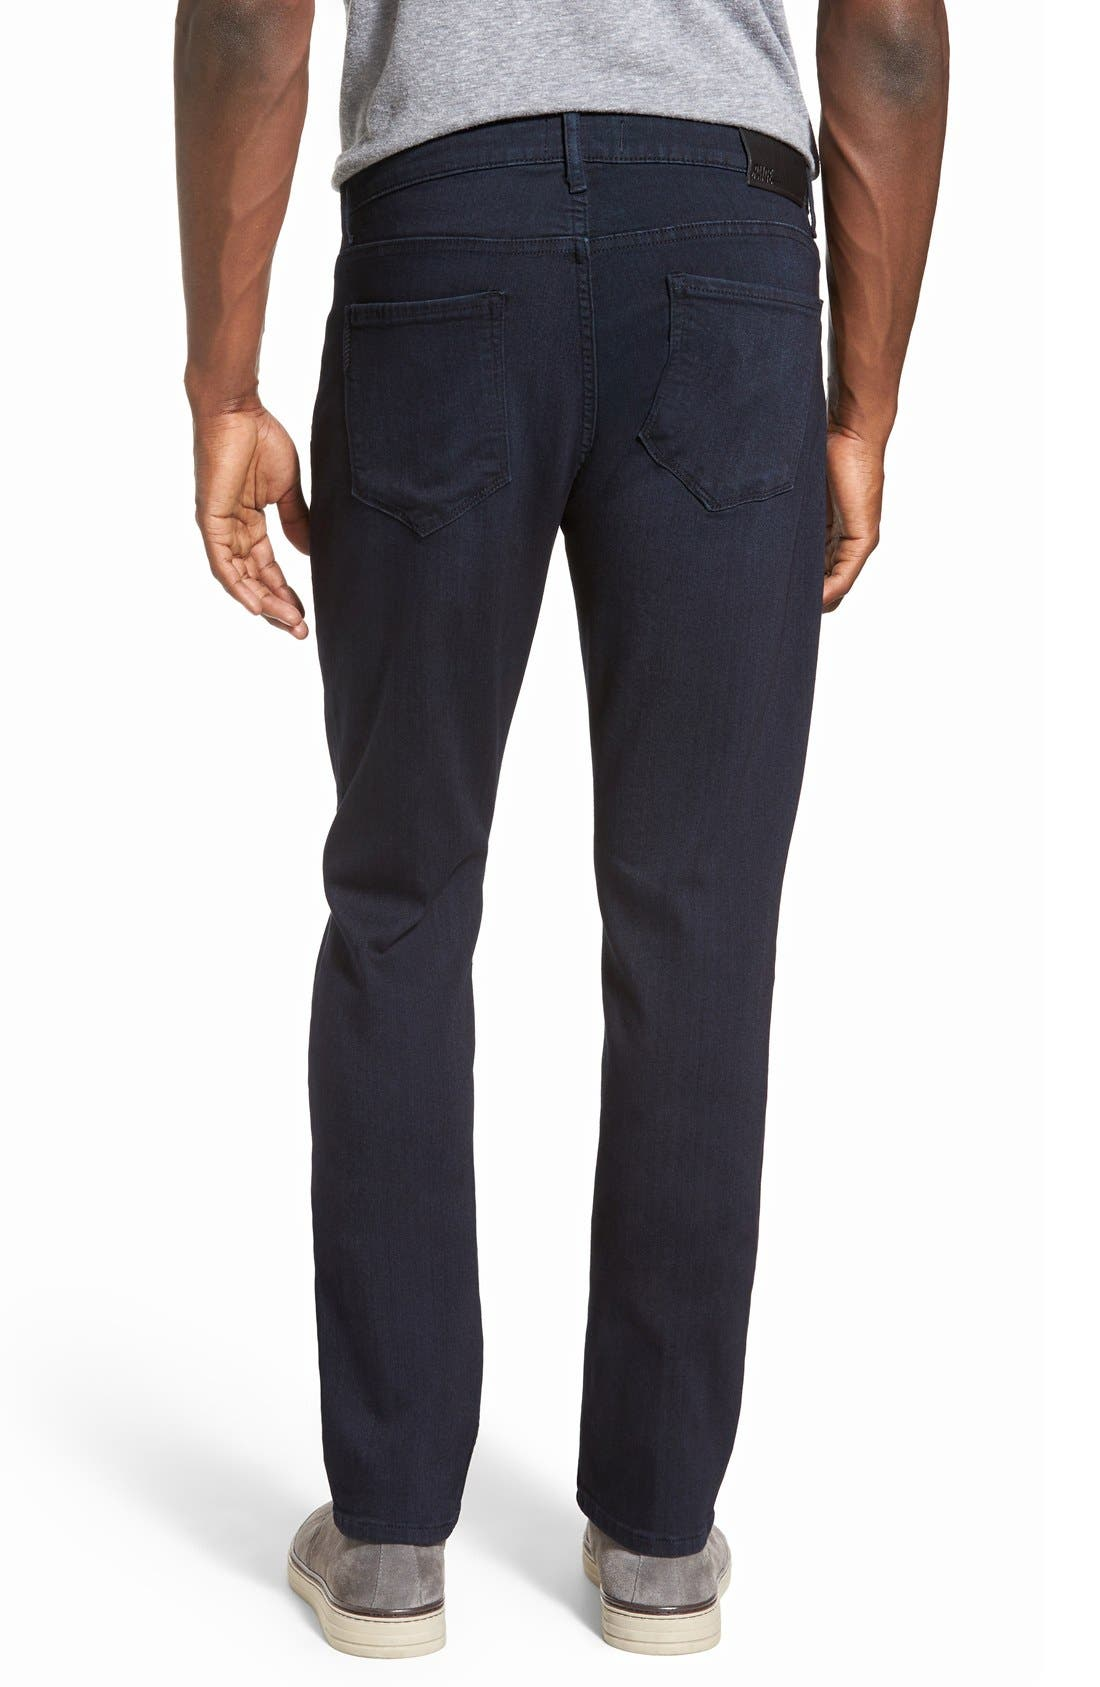 PAIGE, Transcend - Federal Slim Straight Leg Jeans, Alternate thumbnail 9, color, INKWELL